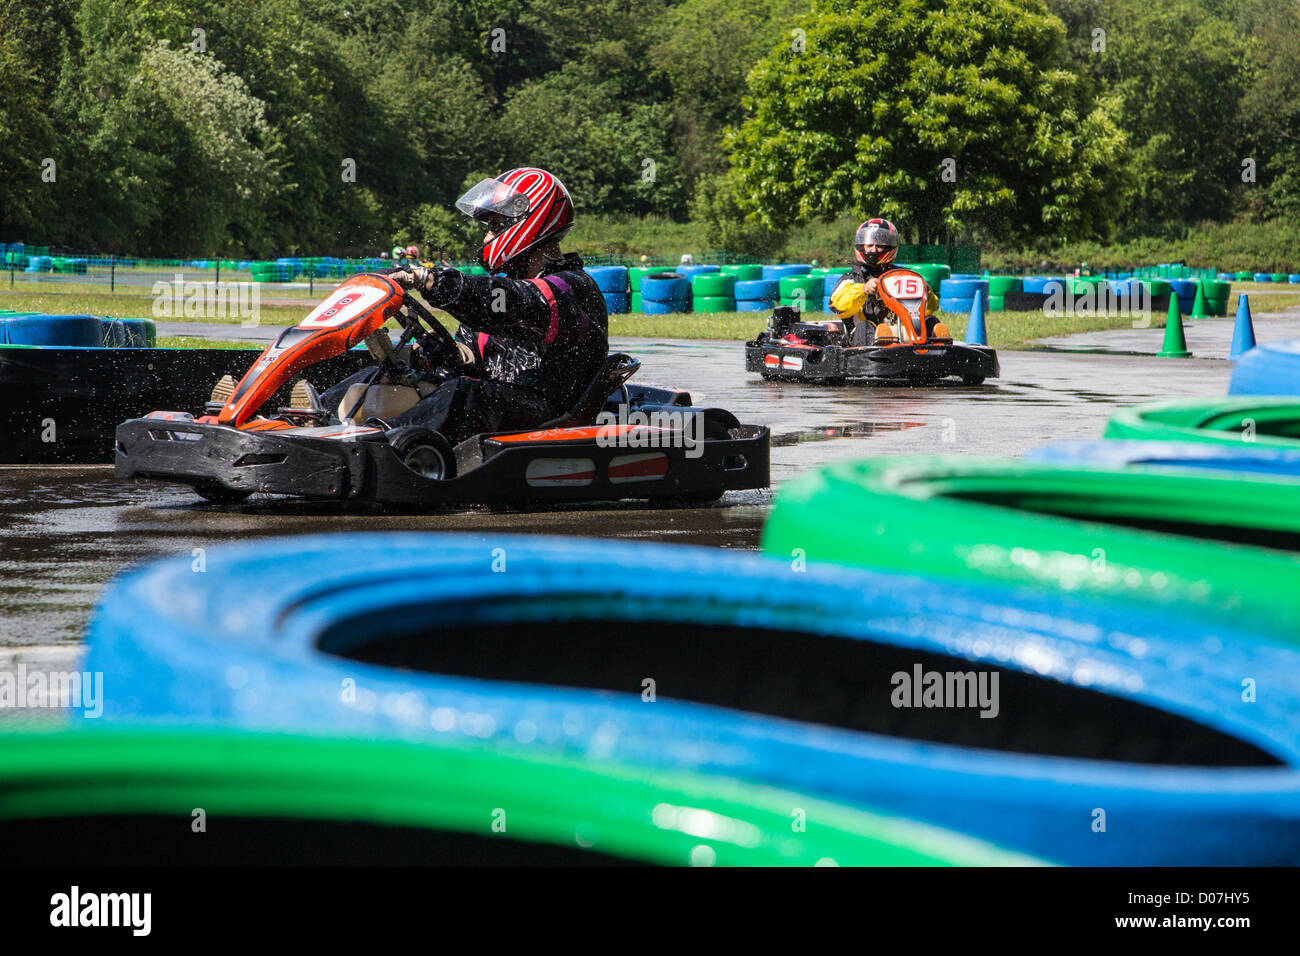 karting helmet stock photos karting helmet stock images alamy. Black Bedroom Furniture Sets. Home Design Ideas